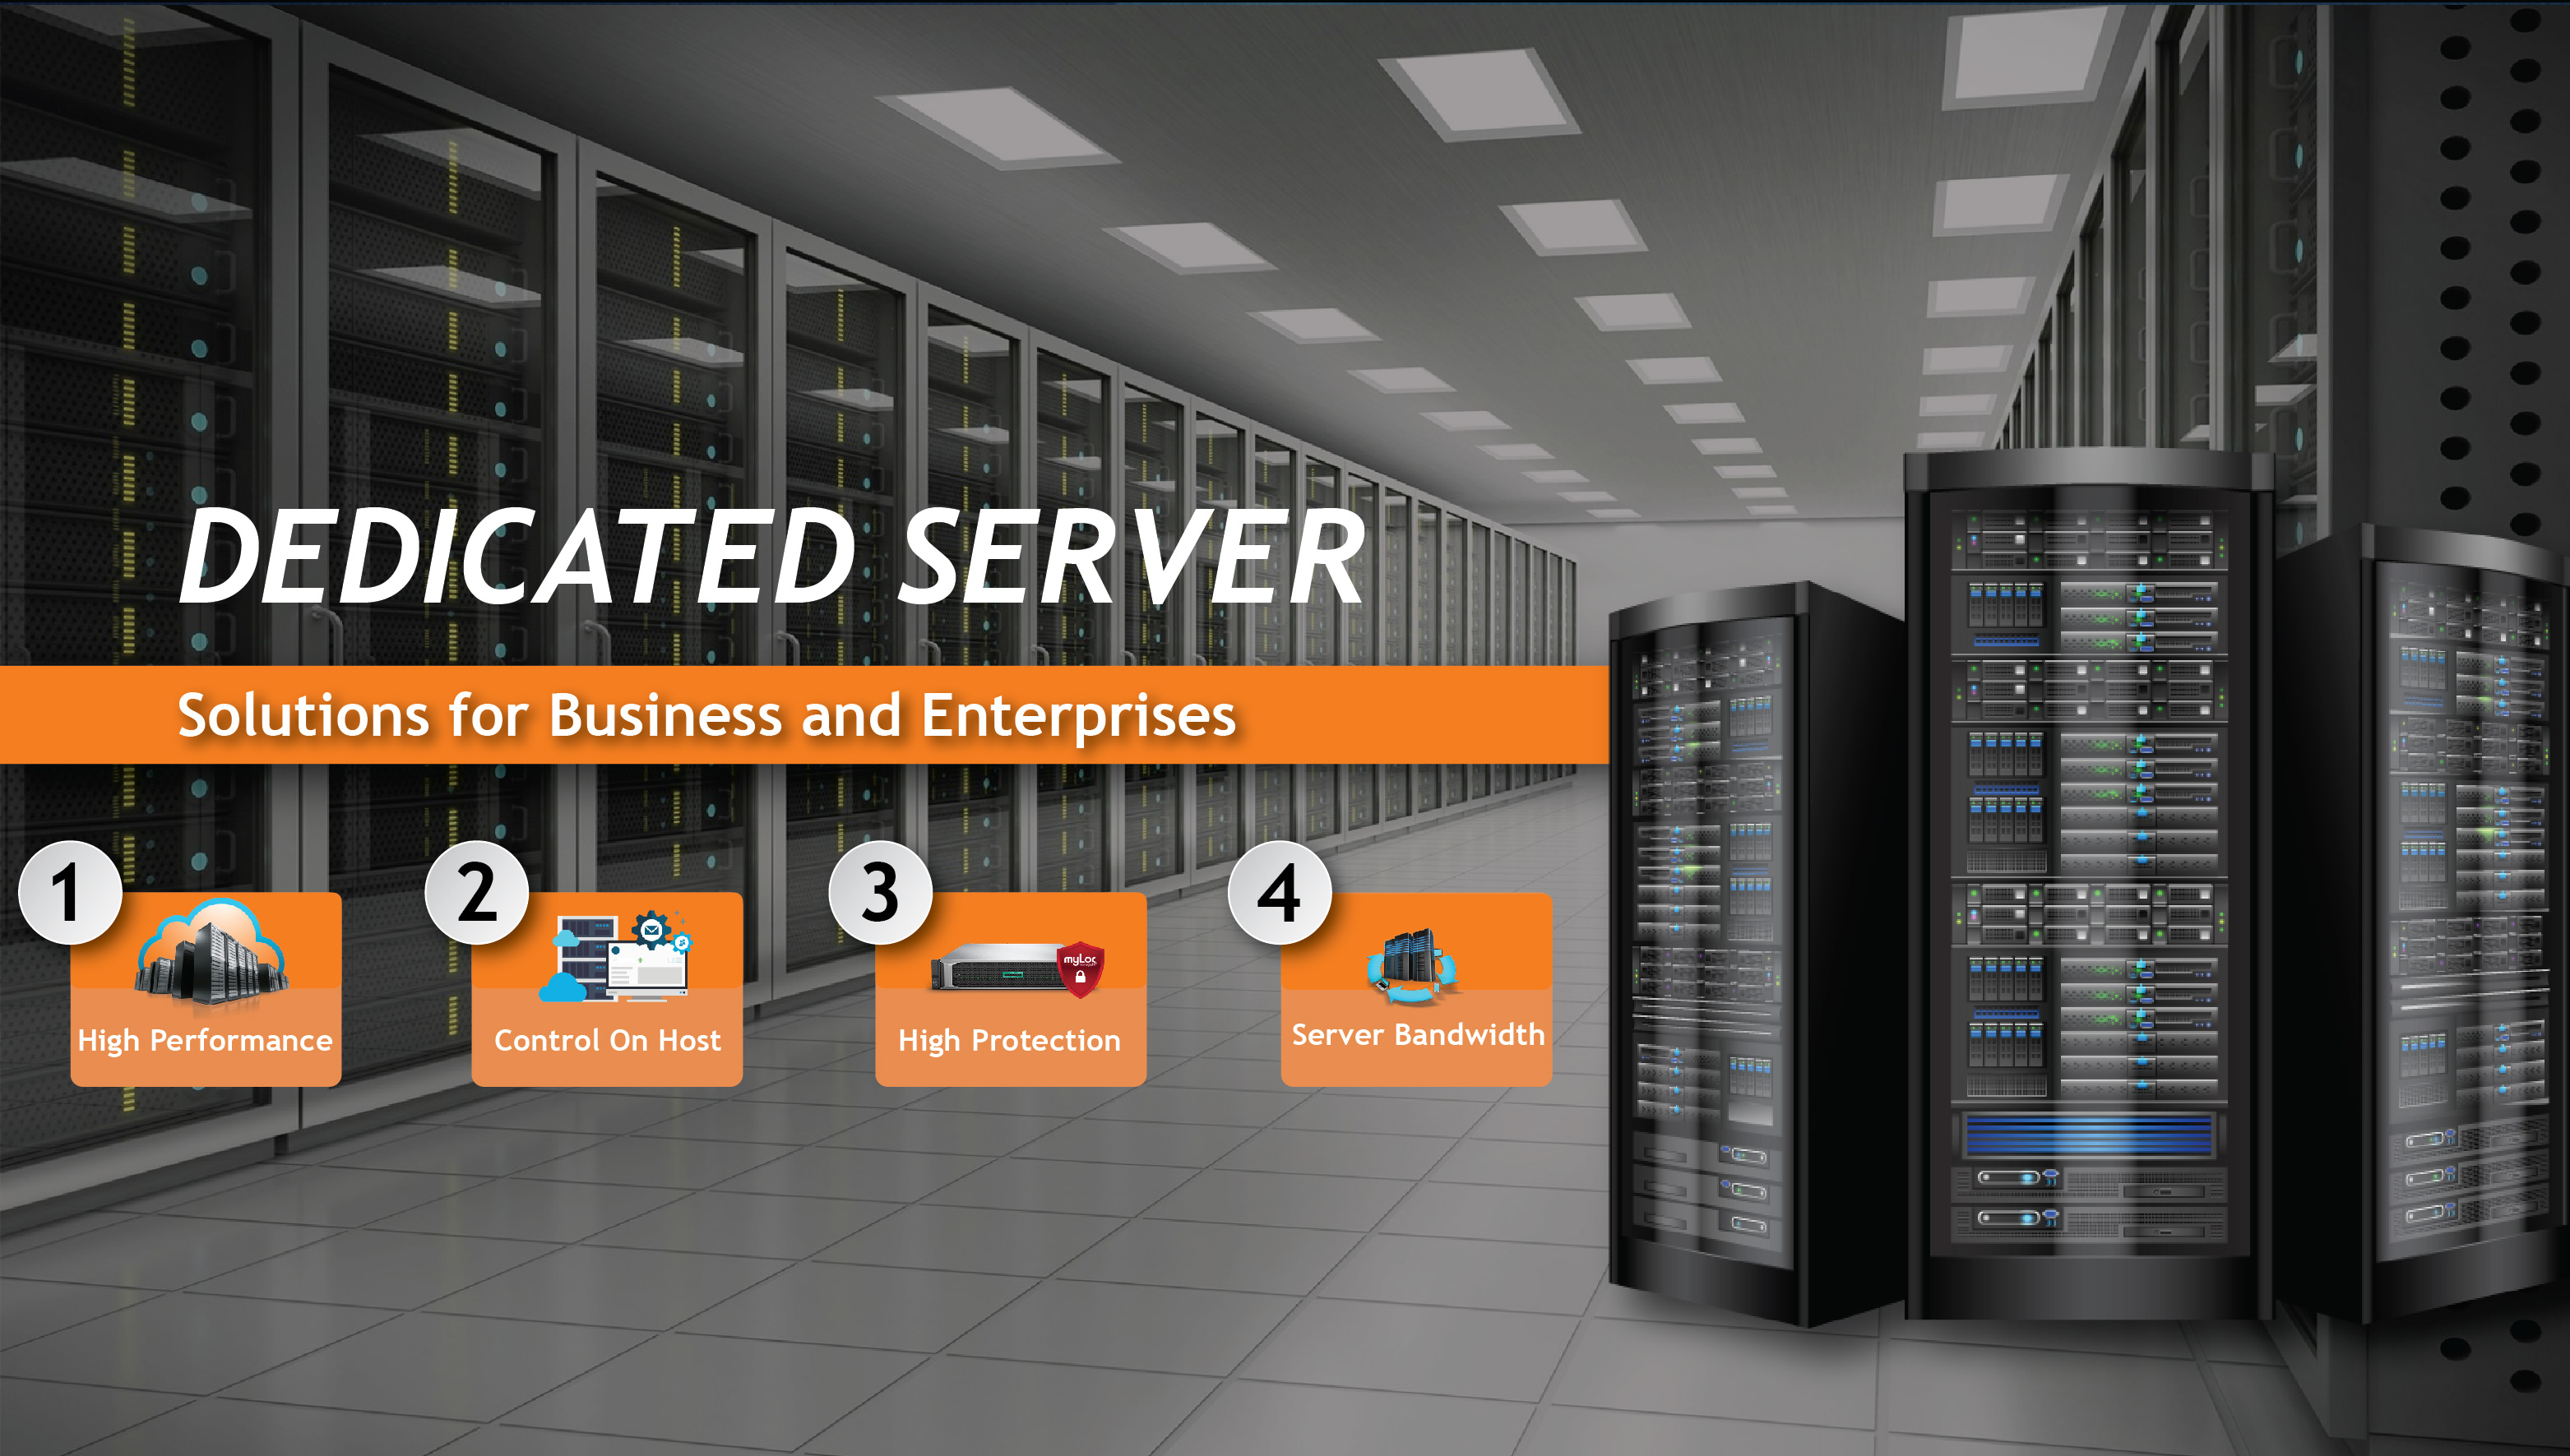 Dedicated Server Solutions for Business and Enterprises